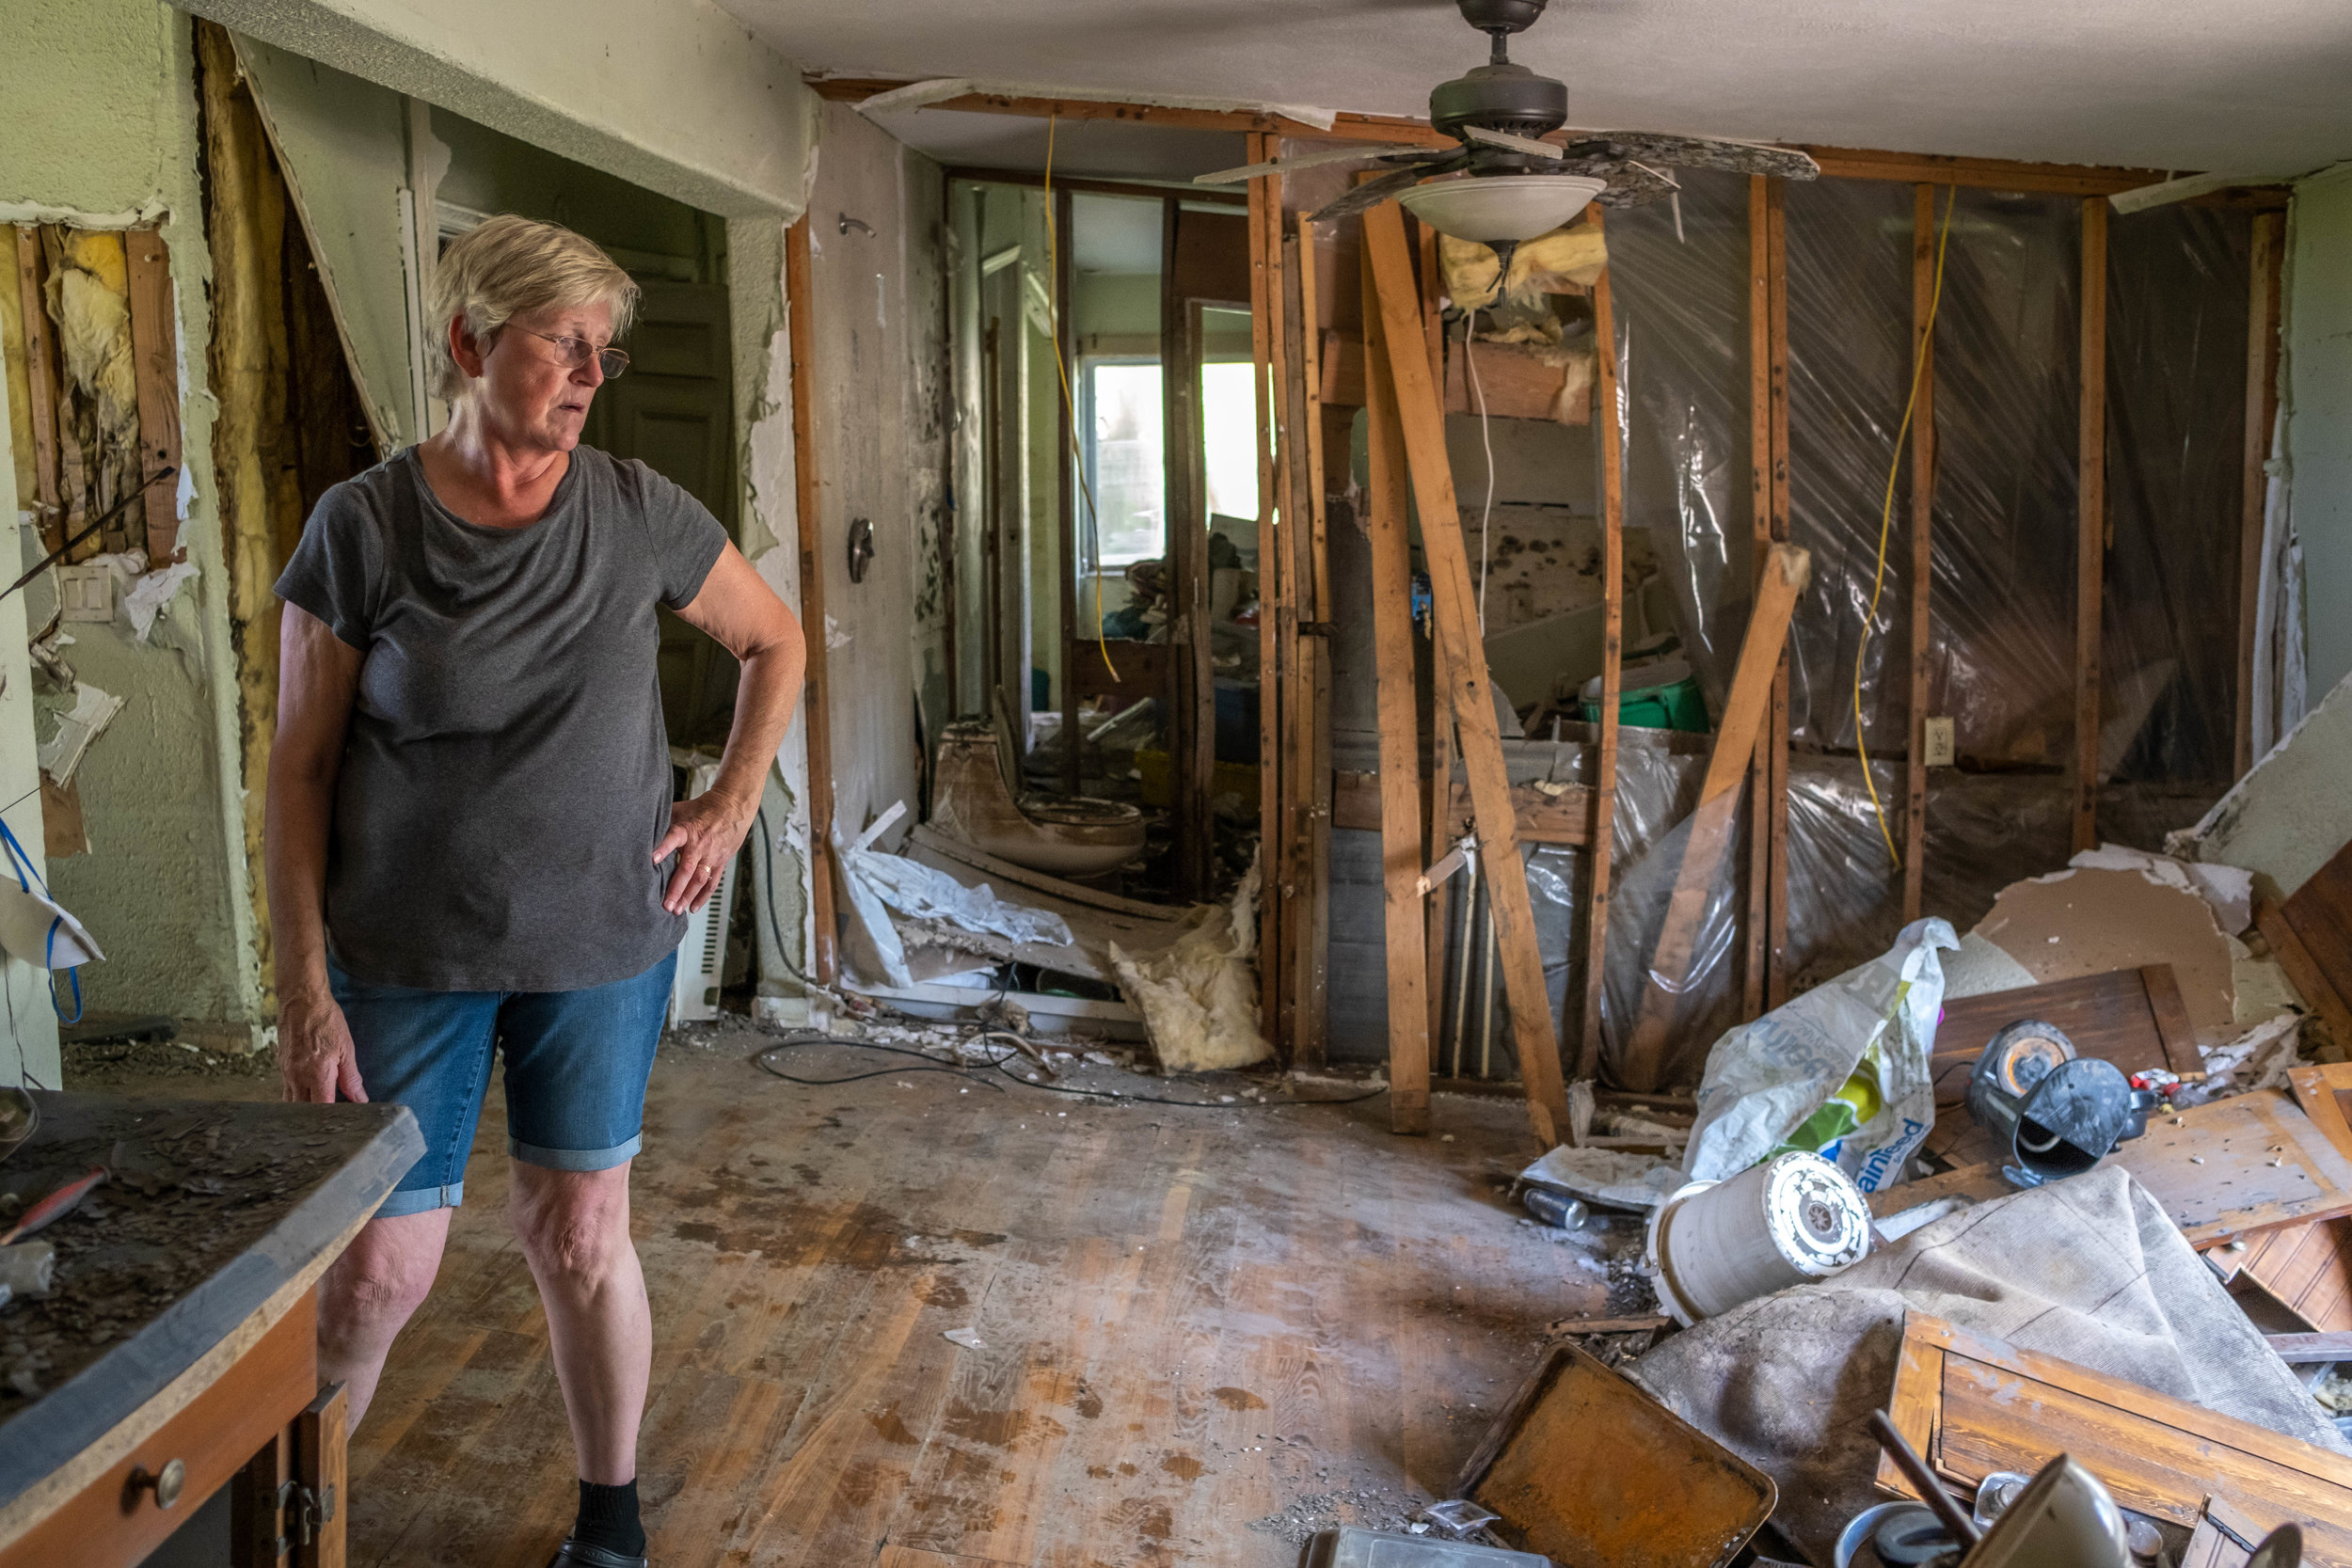 Carol Doty takes a moment to assess the damage. Despite the flood occuring several months back, Carol has only been inside a few times. She's lived in Bartlett since she was 3 years old, and said it's very difficult coming back to all the damage.